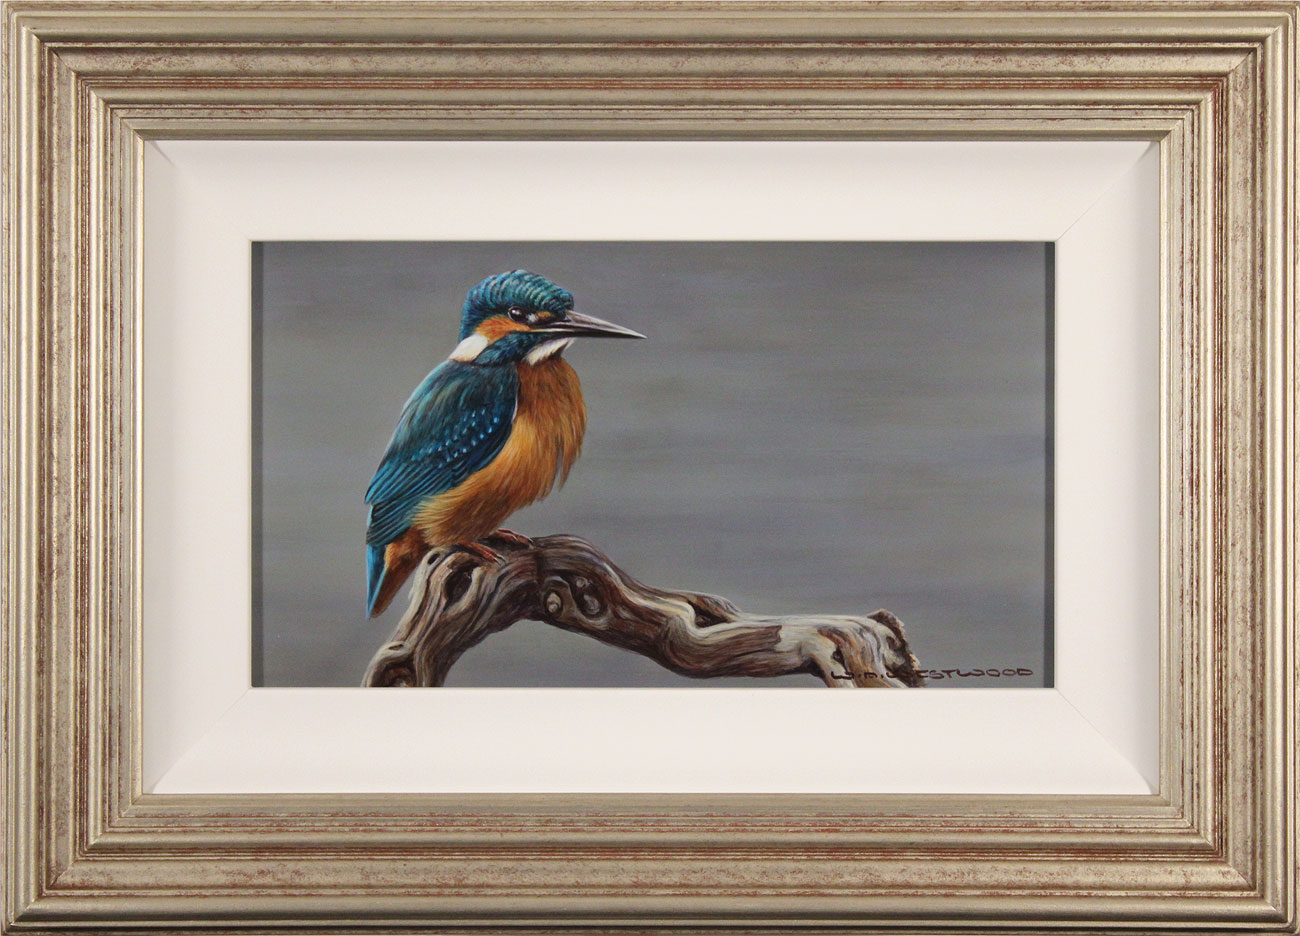 Wayne Westwood, Original oil painting on panel, Kingfisher, click to enlarge